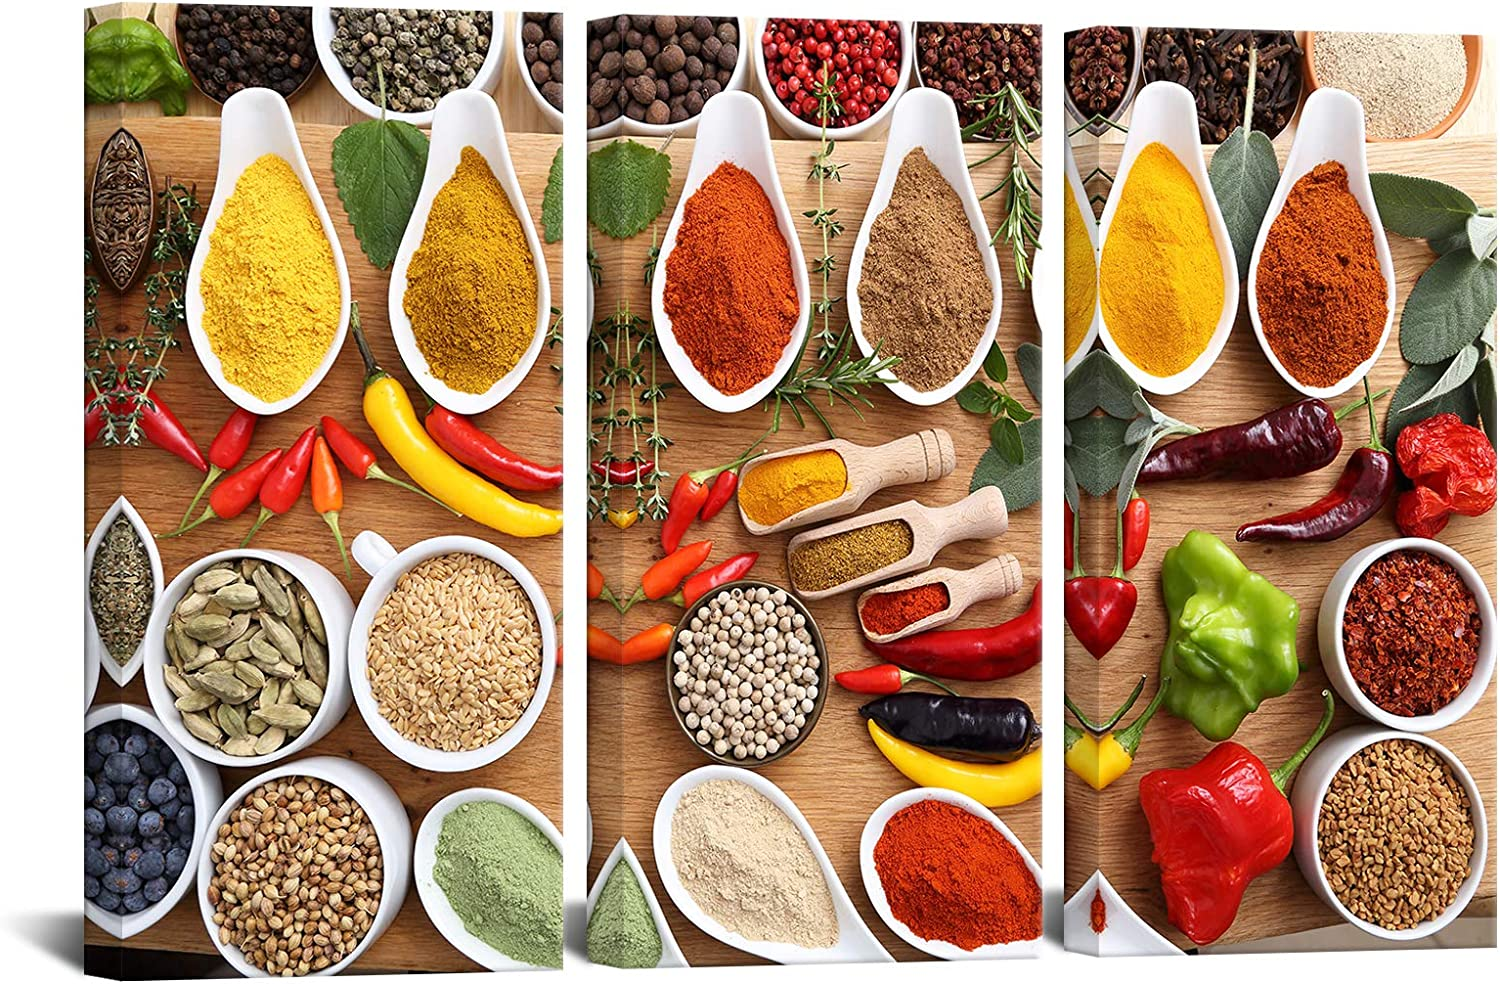 Biuteawal 3 Panels Kitchen Pictures Wall Decor Spices and Spoon Vintage Canvas Wall Art Red Pepper Cooking Seasoning Poster Food Paintngs Print on Canvas Framed Ready to Hang 16x32inchx3pcs